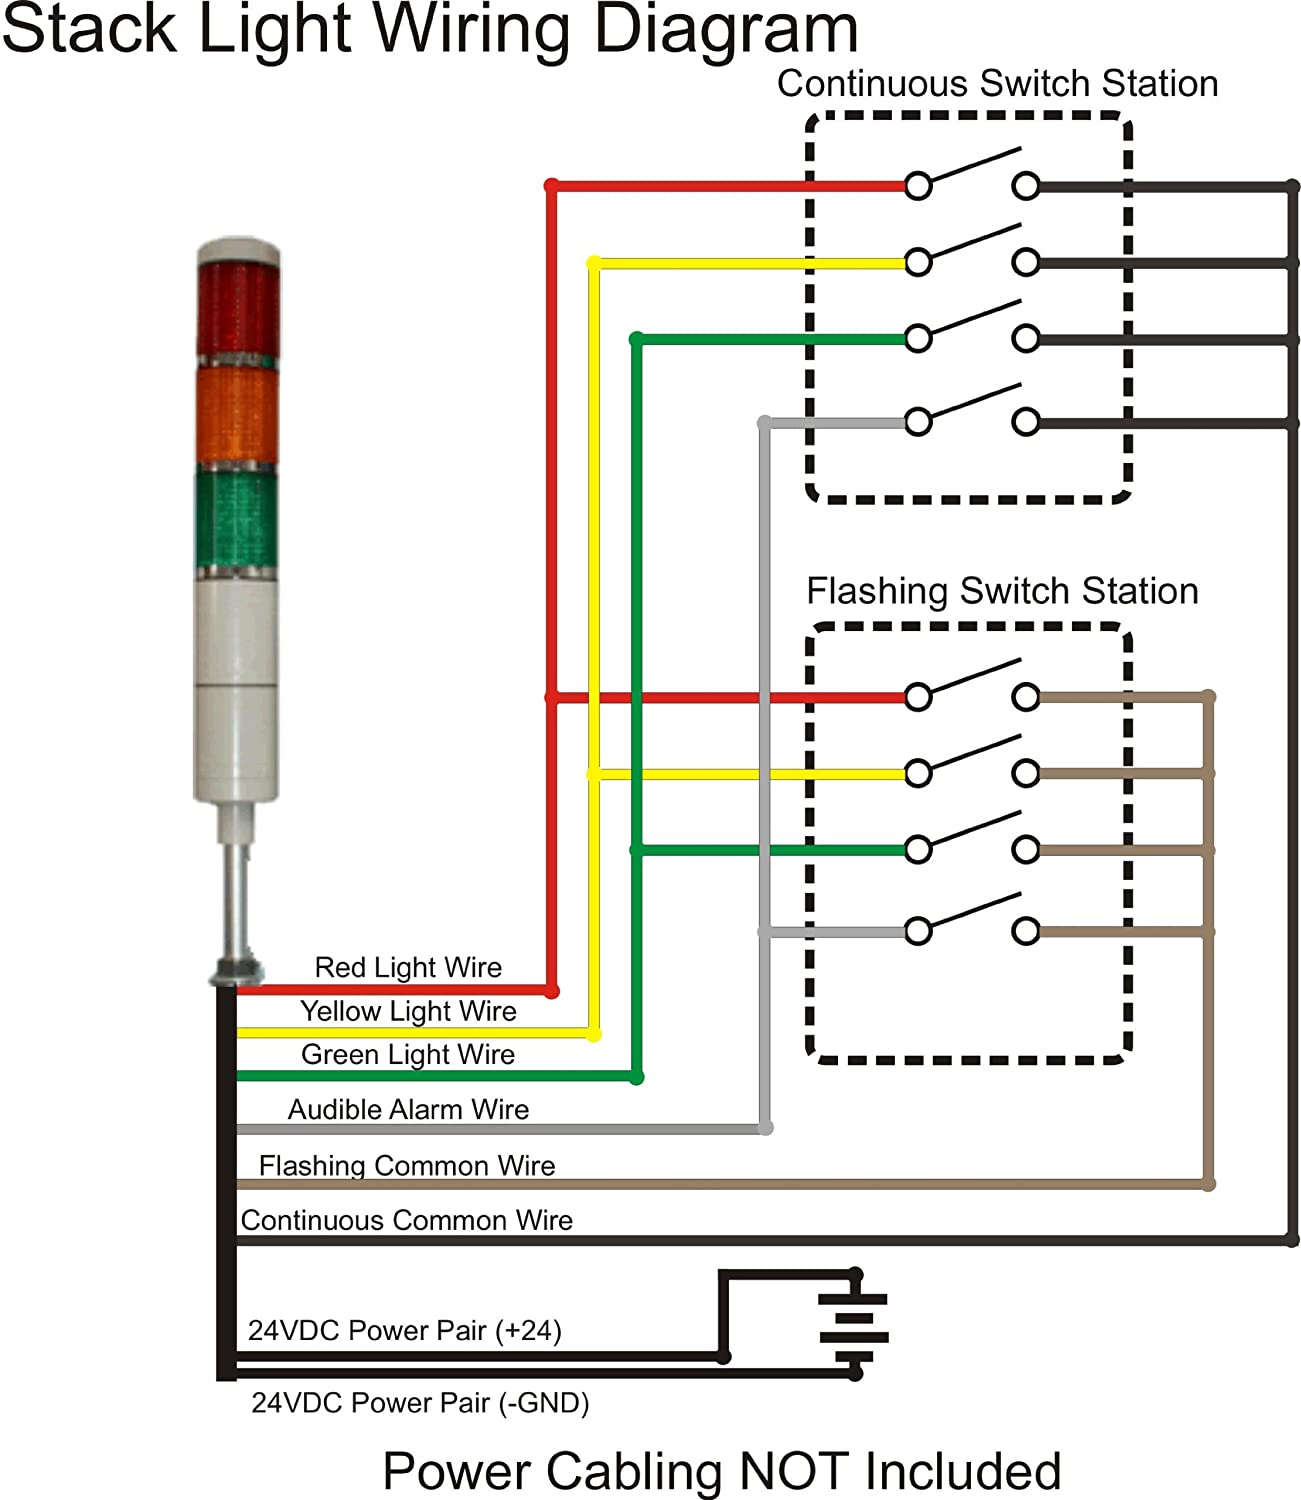 81mI%2BF0TfJL._SL1500_ patlite wiring diagram panasonic wiring diagram \u2022 wiring diagrams patlite signal tower wiring diagram at creativeand.co